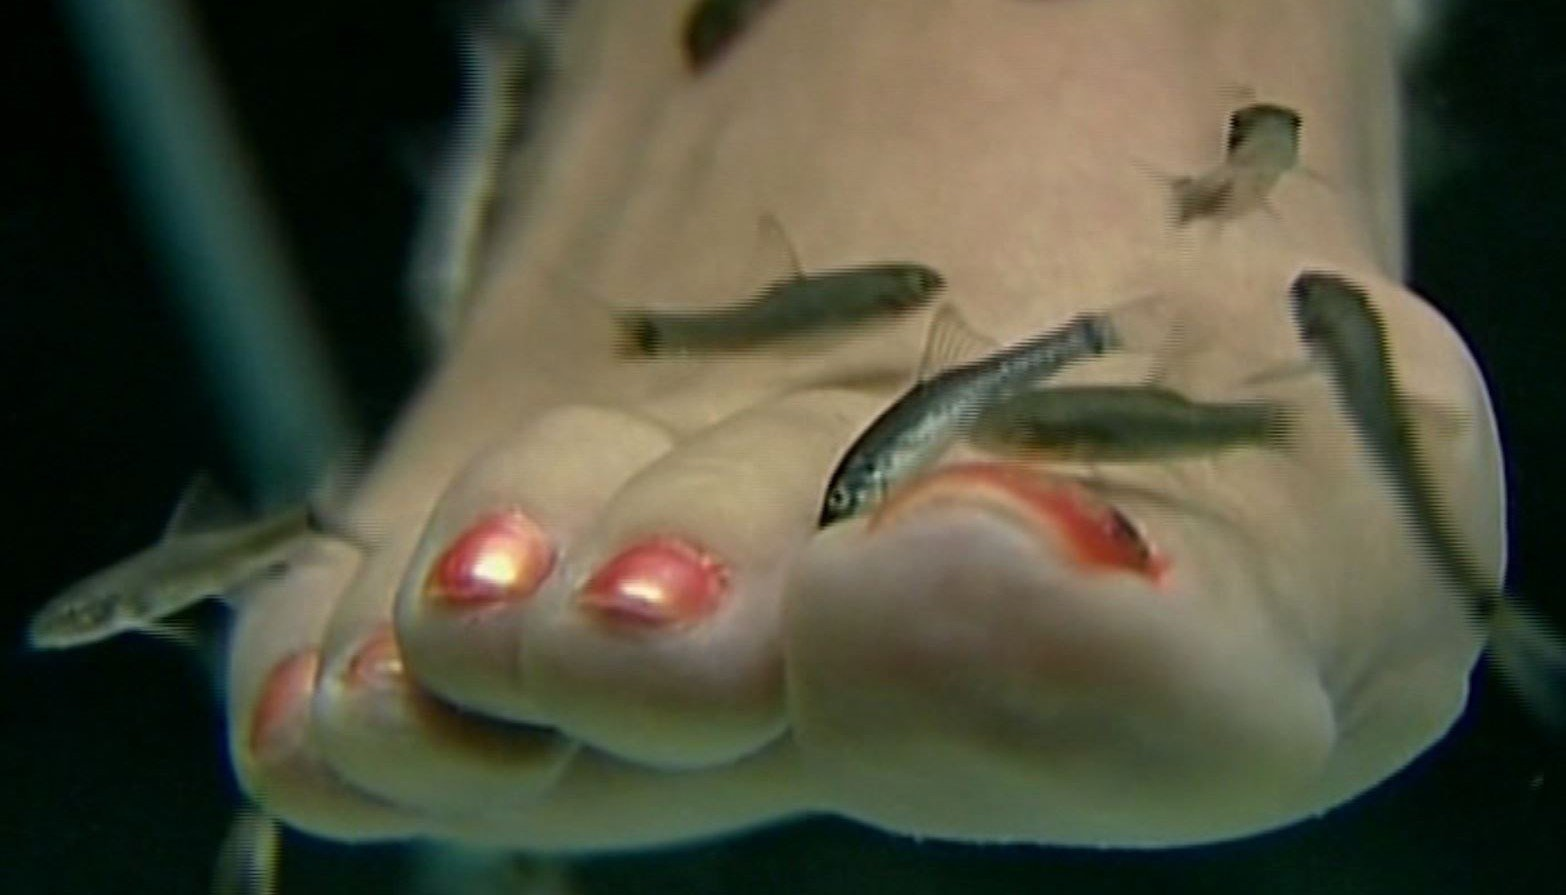 A Woman's Toenails Fell Off After a Fish Pedicure